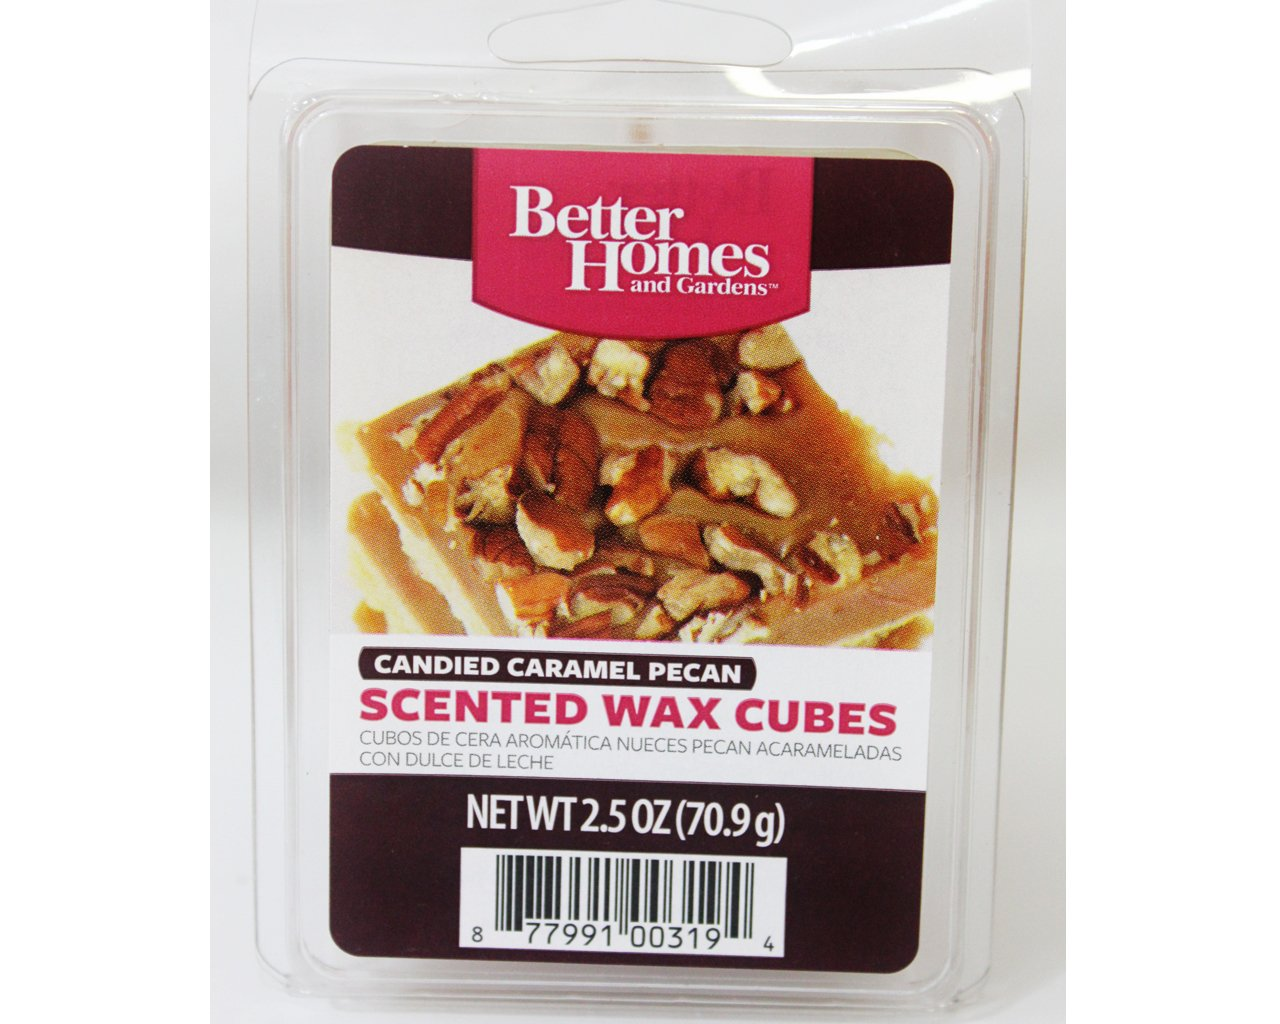 Better homes and gardens candied caramel pecan scented wax - Better homes and gardens scented wax cubes ...